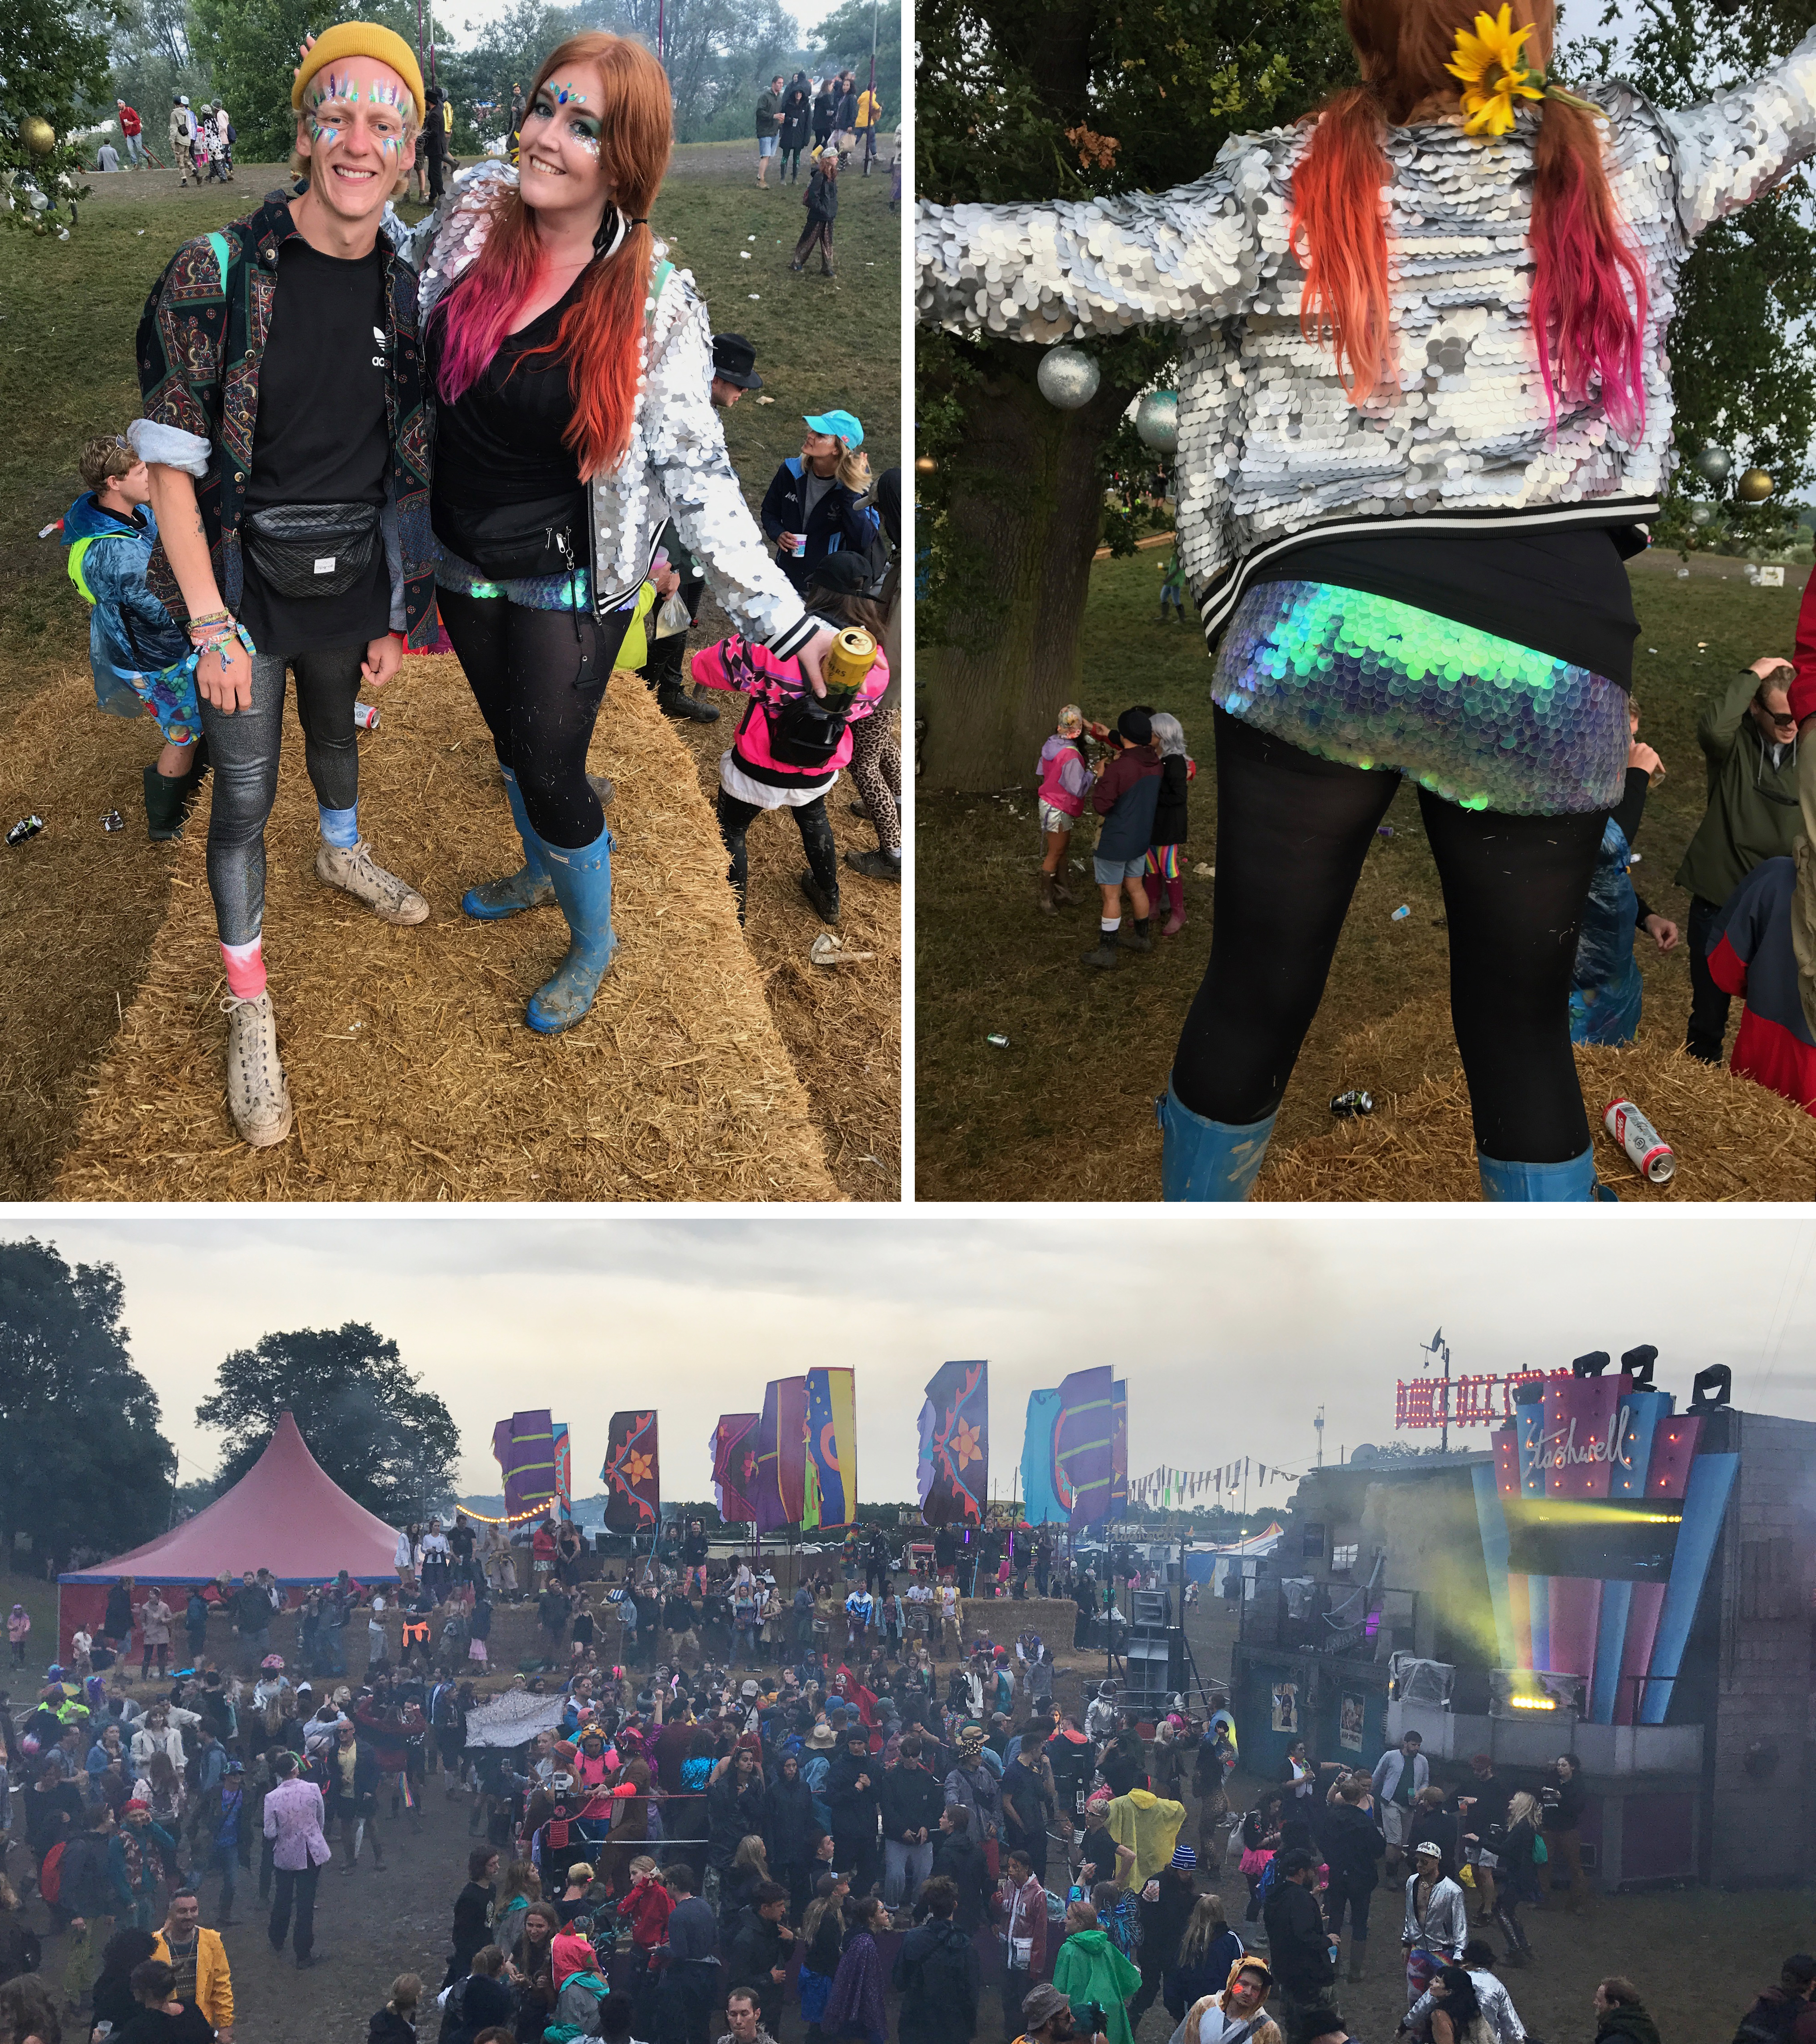 Thom and I on top of the hay bales, me in my Rosa Bloom sequin shorts and the view of the dance off from the bales